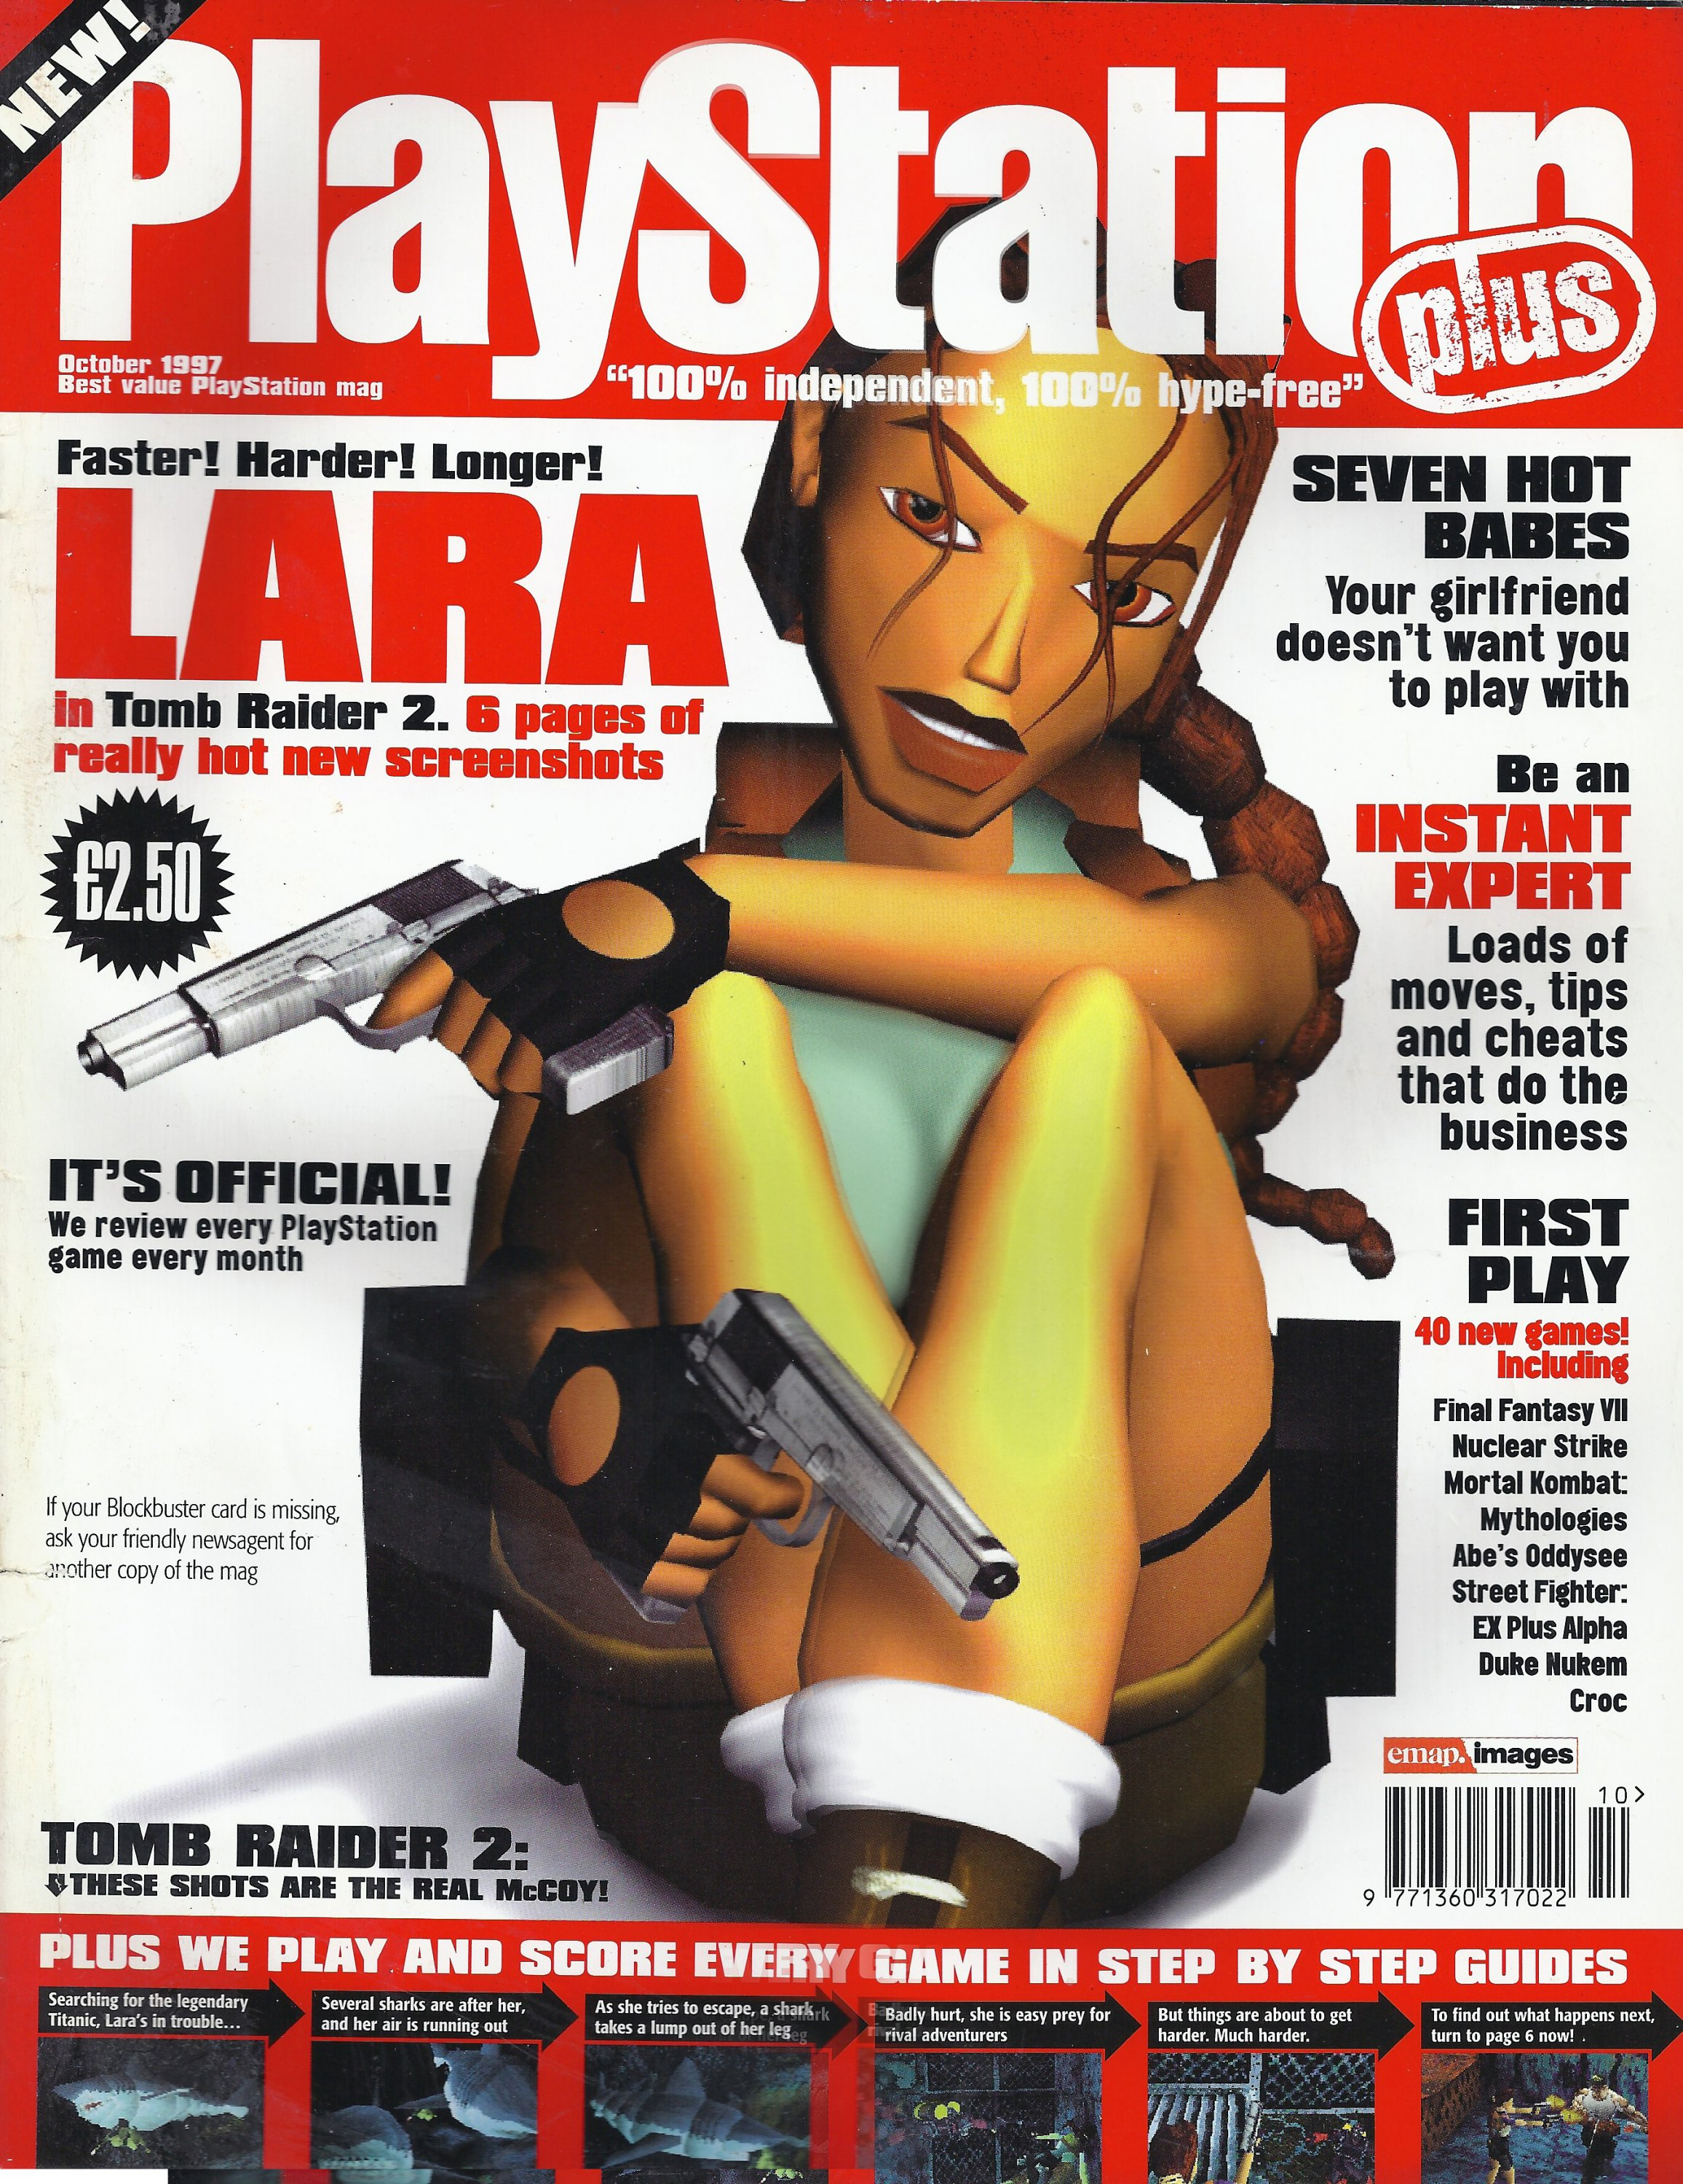 Playstation Plus Issue 025 (October 1997)